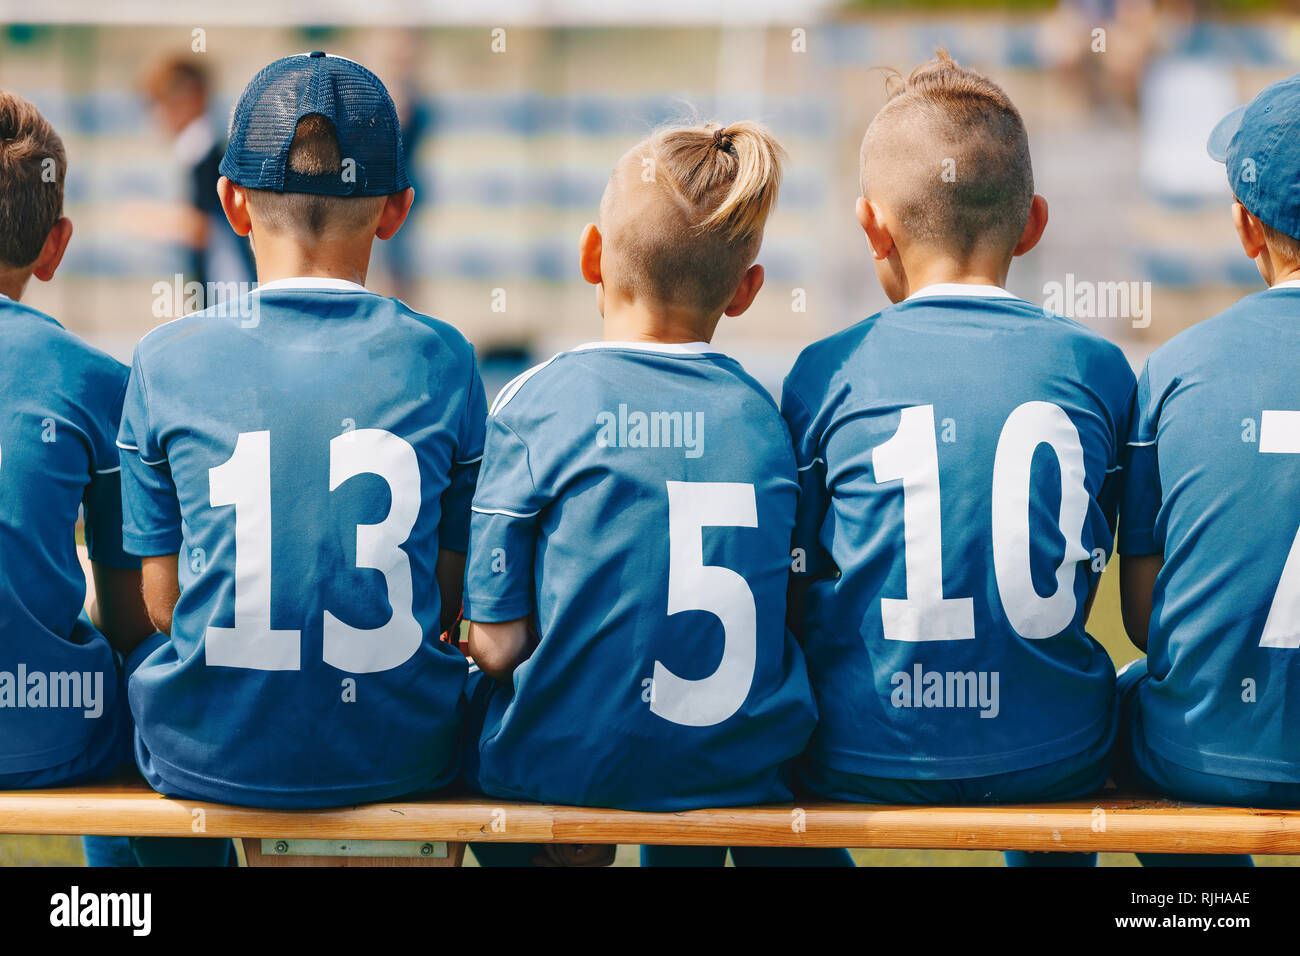 Boys Sitting on Soccer Football Wooden Bench. Kids Football Team. Soccer Tournament Match for Children. Young Boys Playing European Football Game. Chi - Stock Image